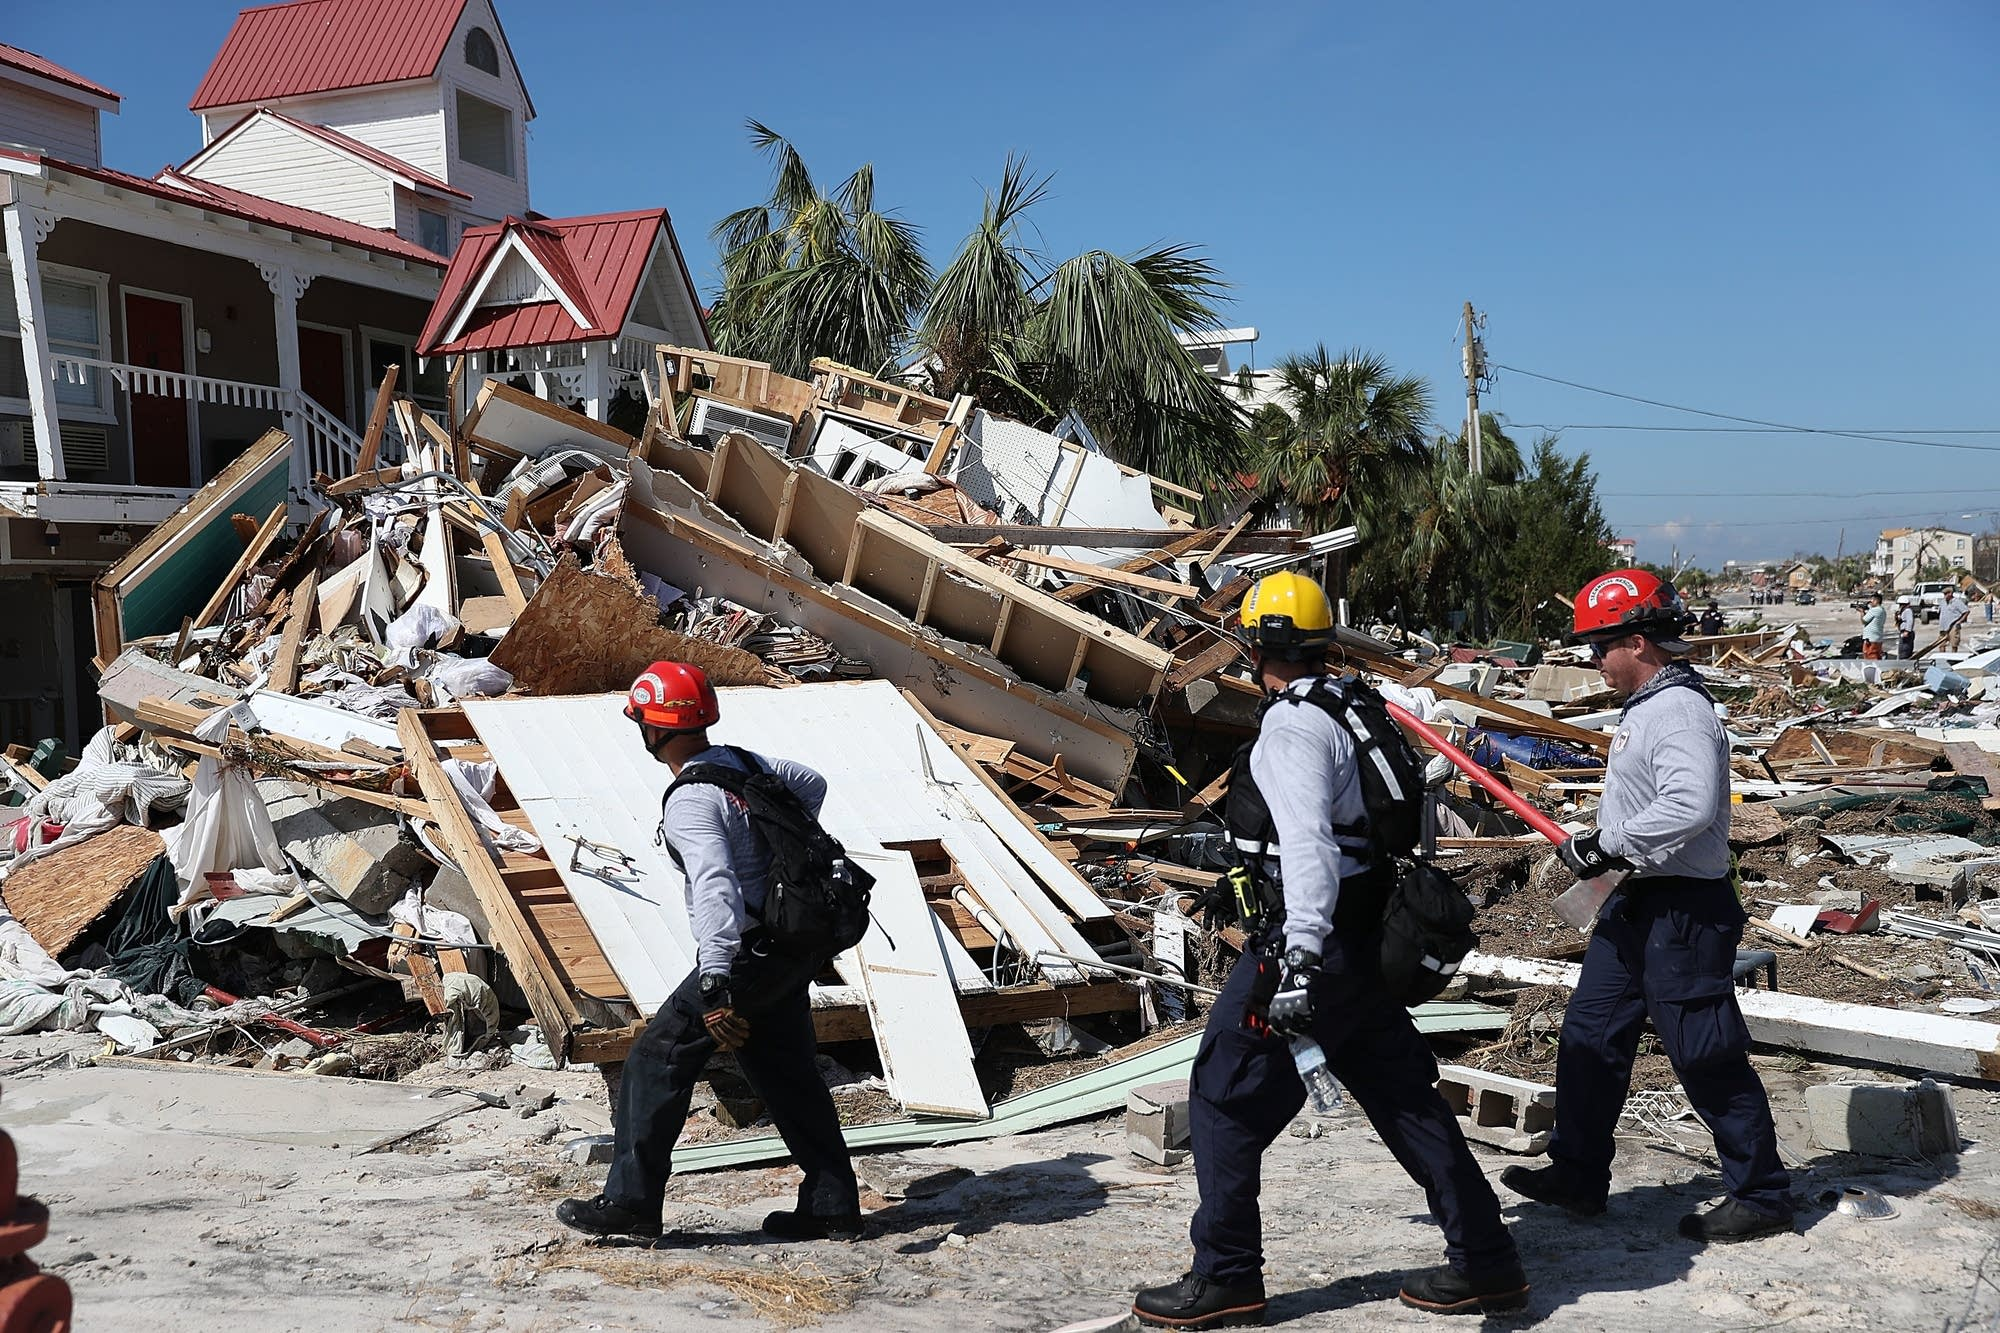 Rescuers search for survivors.